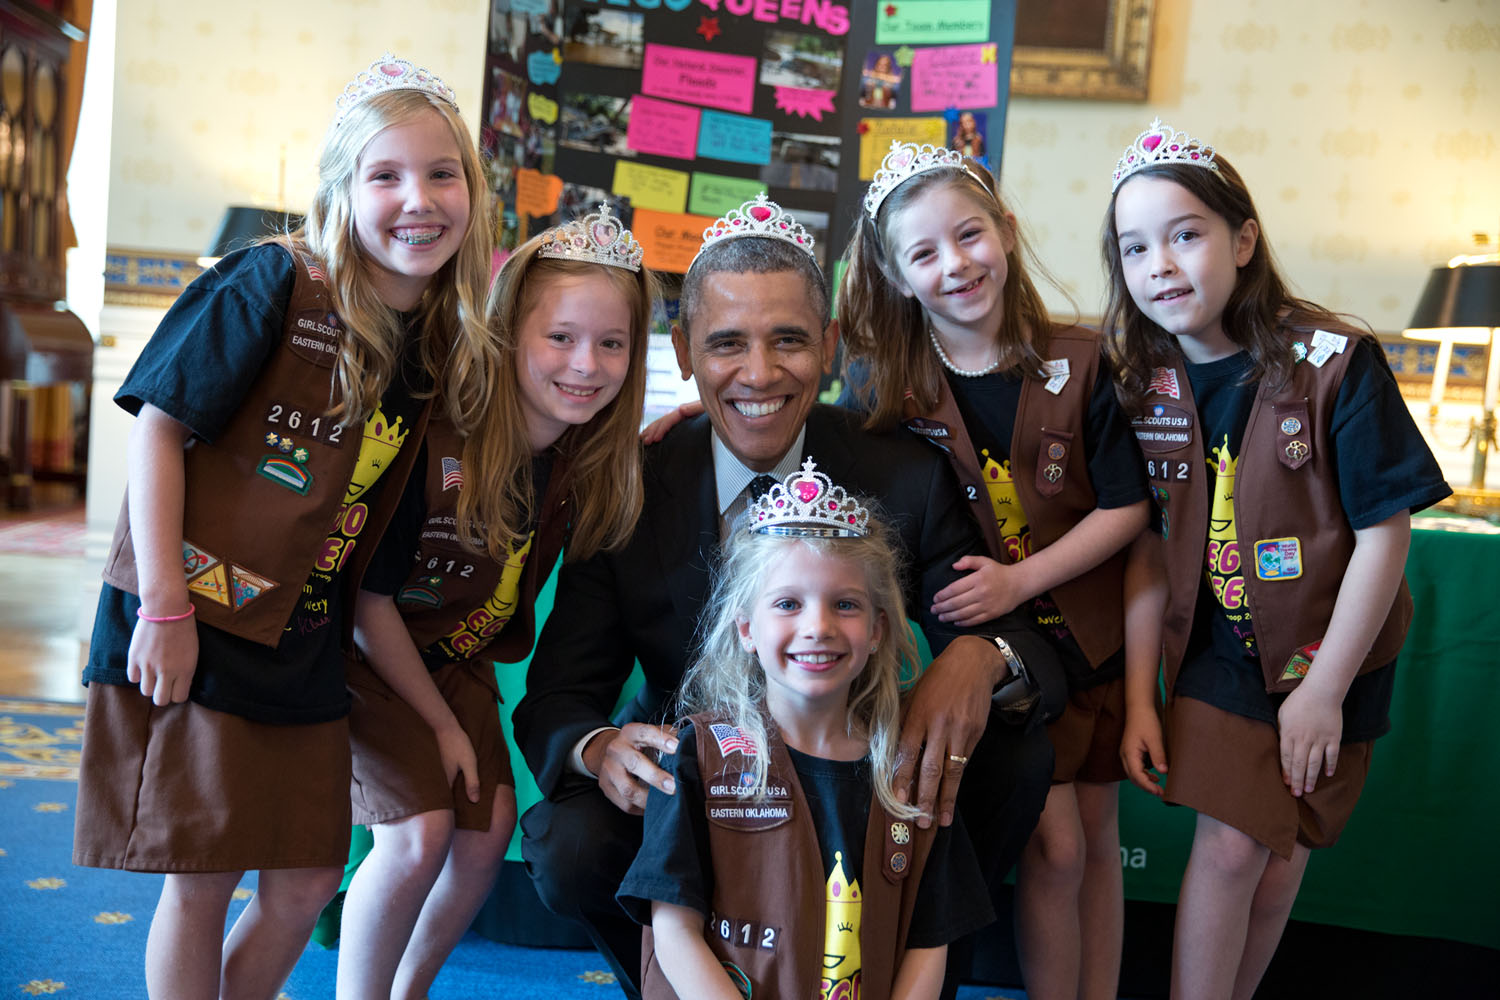 The president poses with Avery Dodson, Natalie Hurley, Miriam Schaffer, Claire Winton and Lucy Claire Sharp, members of Girl Scout Troop 2612 in Tulsa, Oklahoma at the White House science fair. The fair celebrated the student winners of a broad range of science, technology, engineering and math (STEM) competitions from across the country. Official White House photo by Pete Souza.